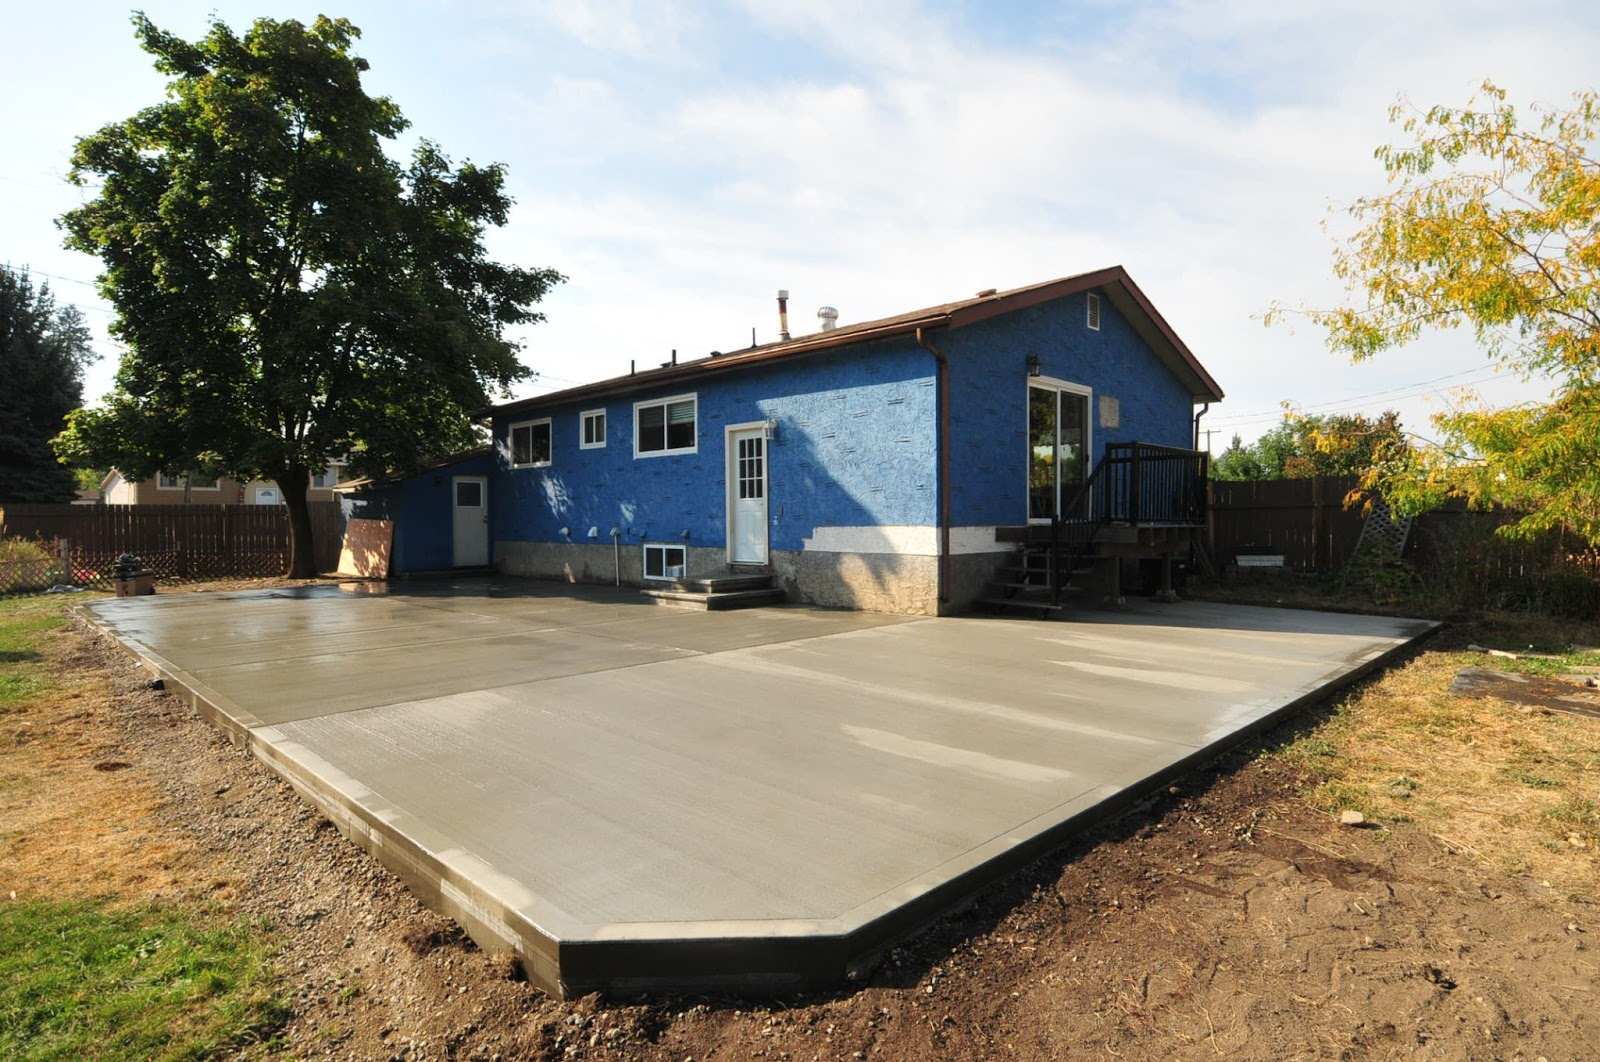 Amazing Decorative Concrete Patios, Concrete Slabs, Driveways And Pool Decks   MODE  CONCRETE Are Refinishing, Repair And Installation Experts In Kelowna BC